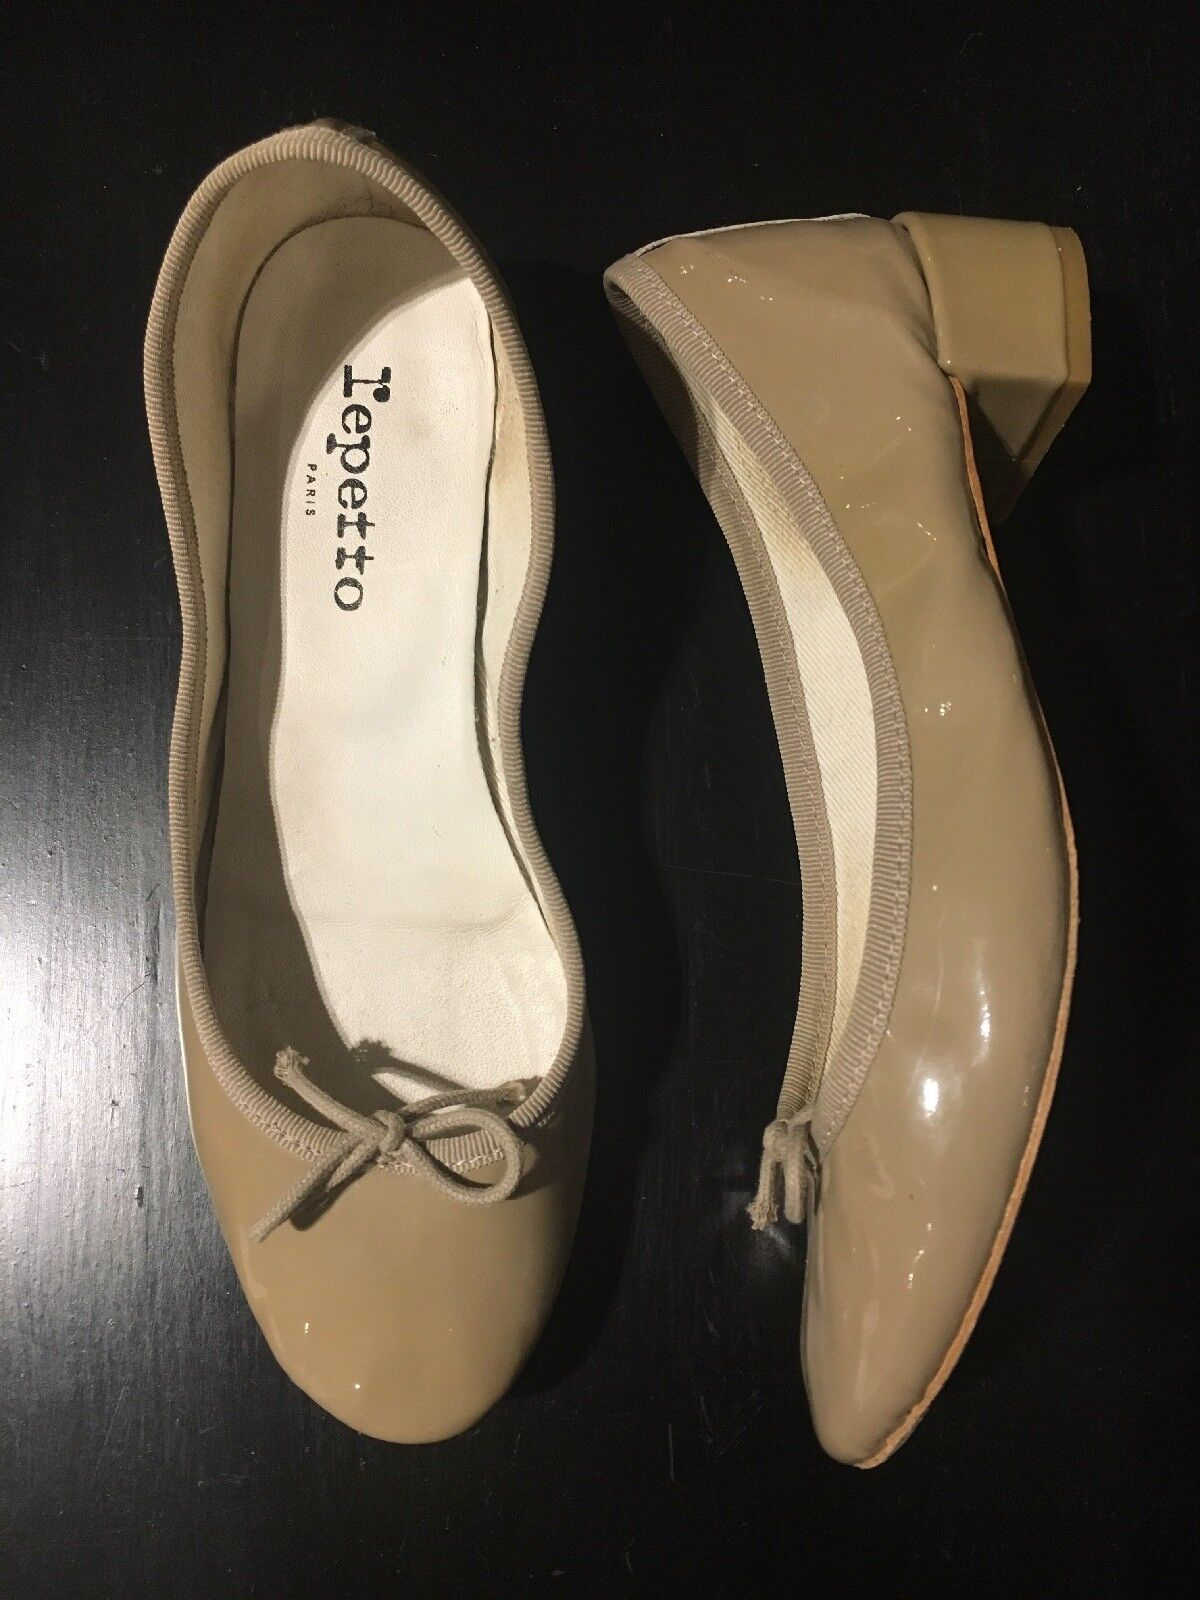 Repetto Camille Patent Leather Ballet Pumps Block Heel Sand Beige 37